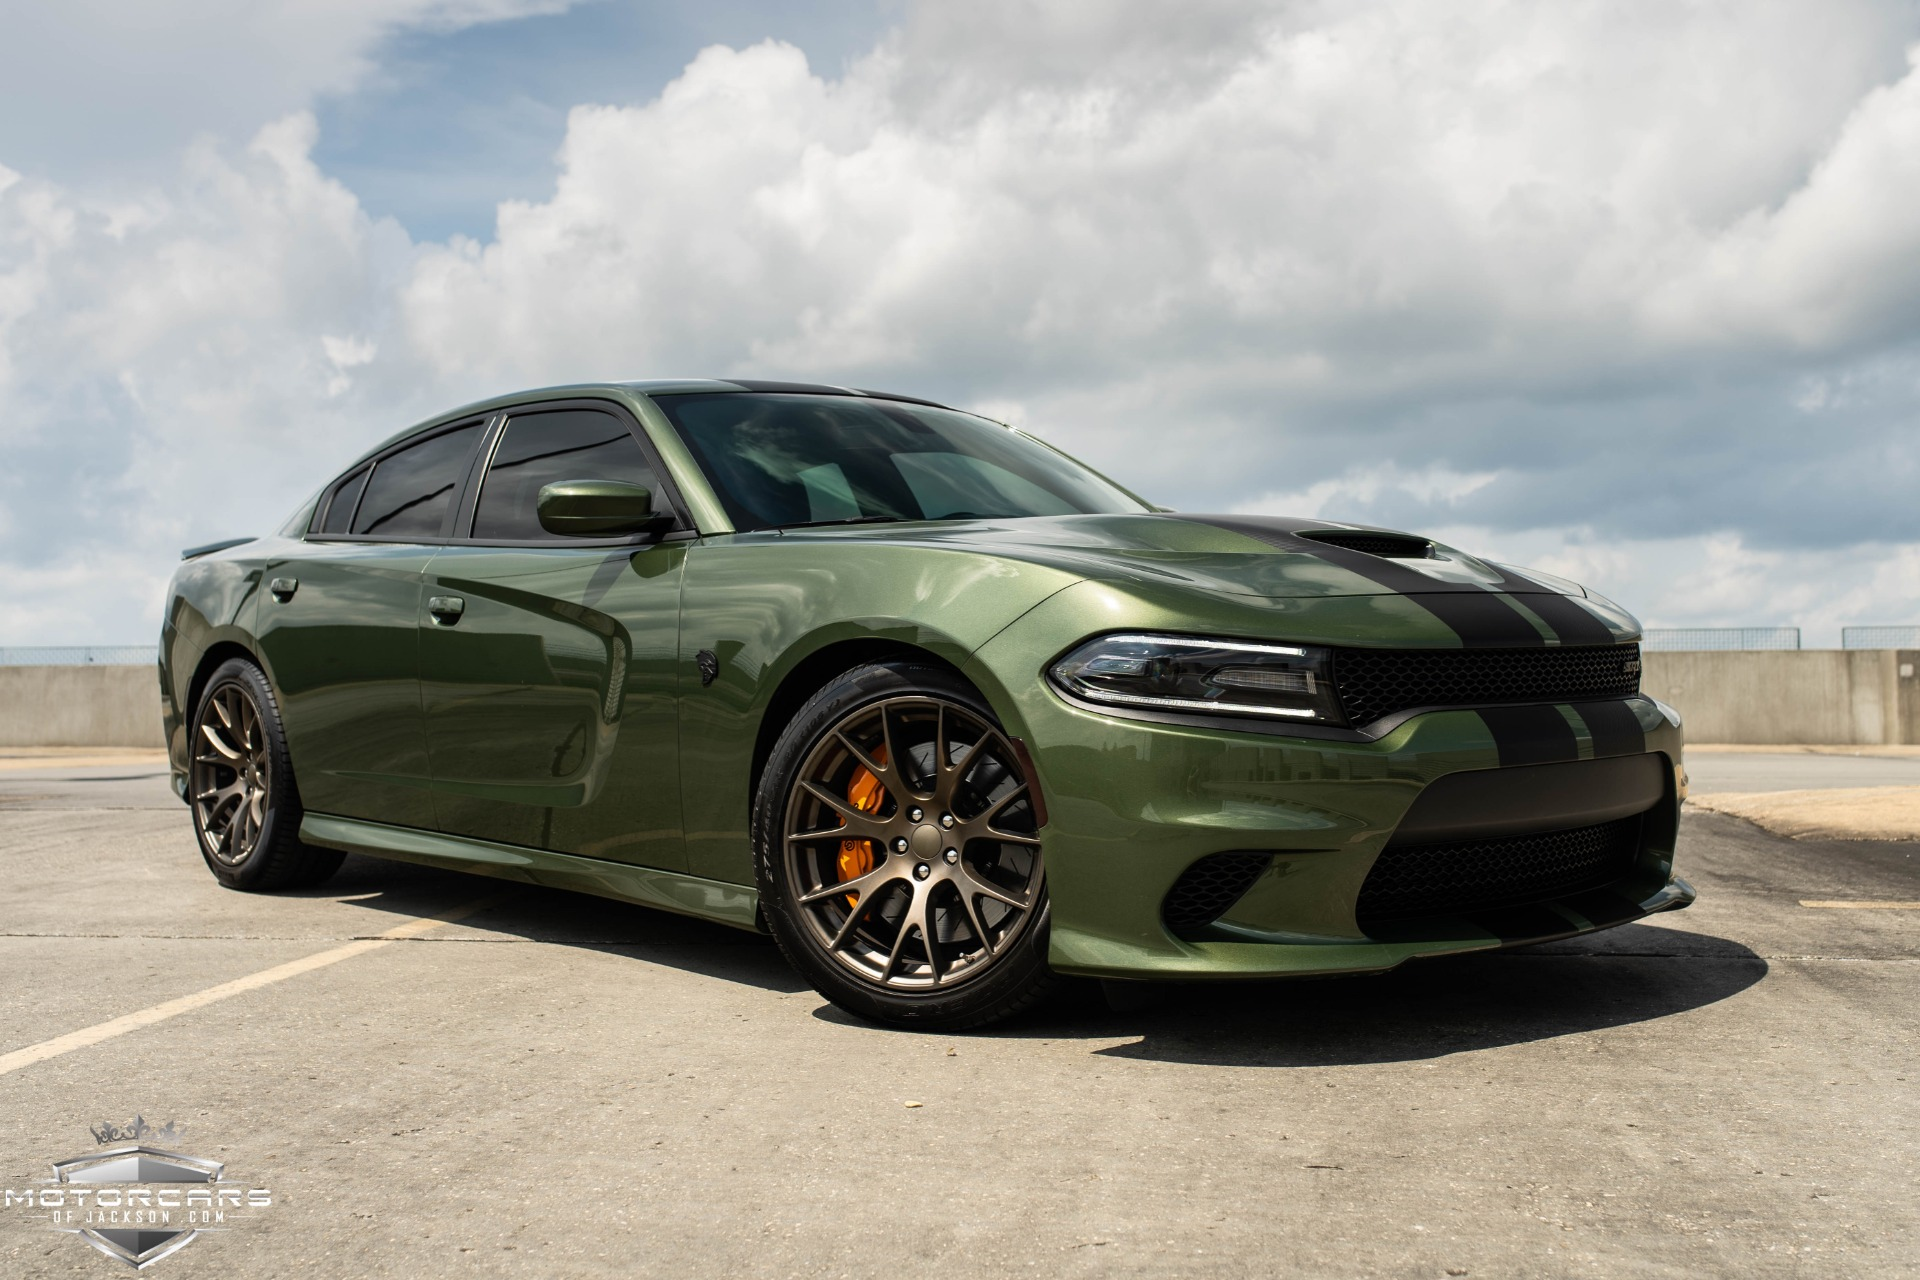 Used-2018-Dodge-Charger-SRT-Hellcat-for-sale-Jackson-MS